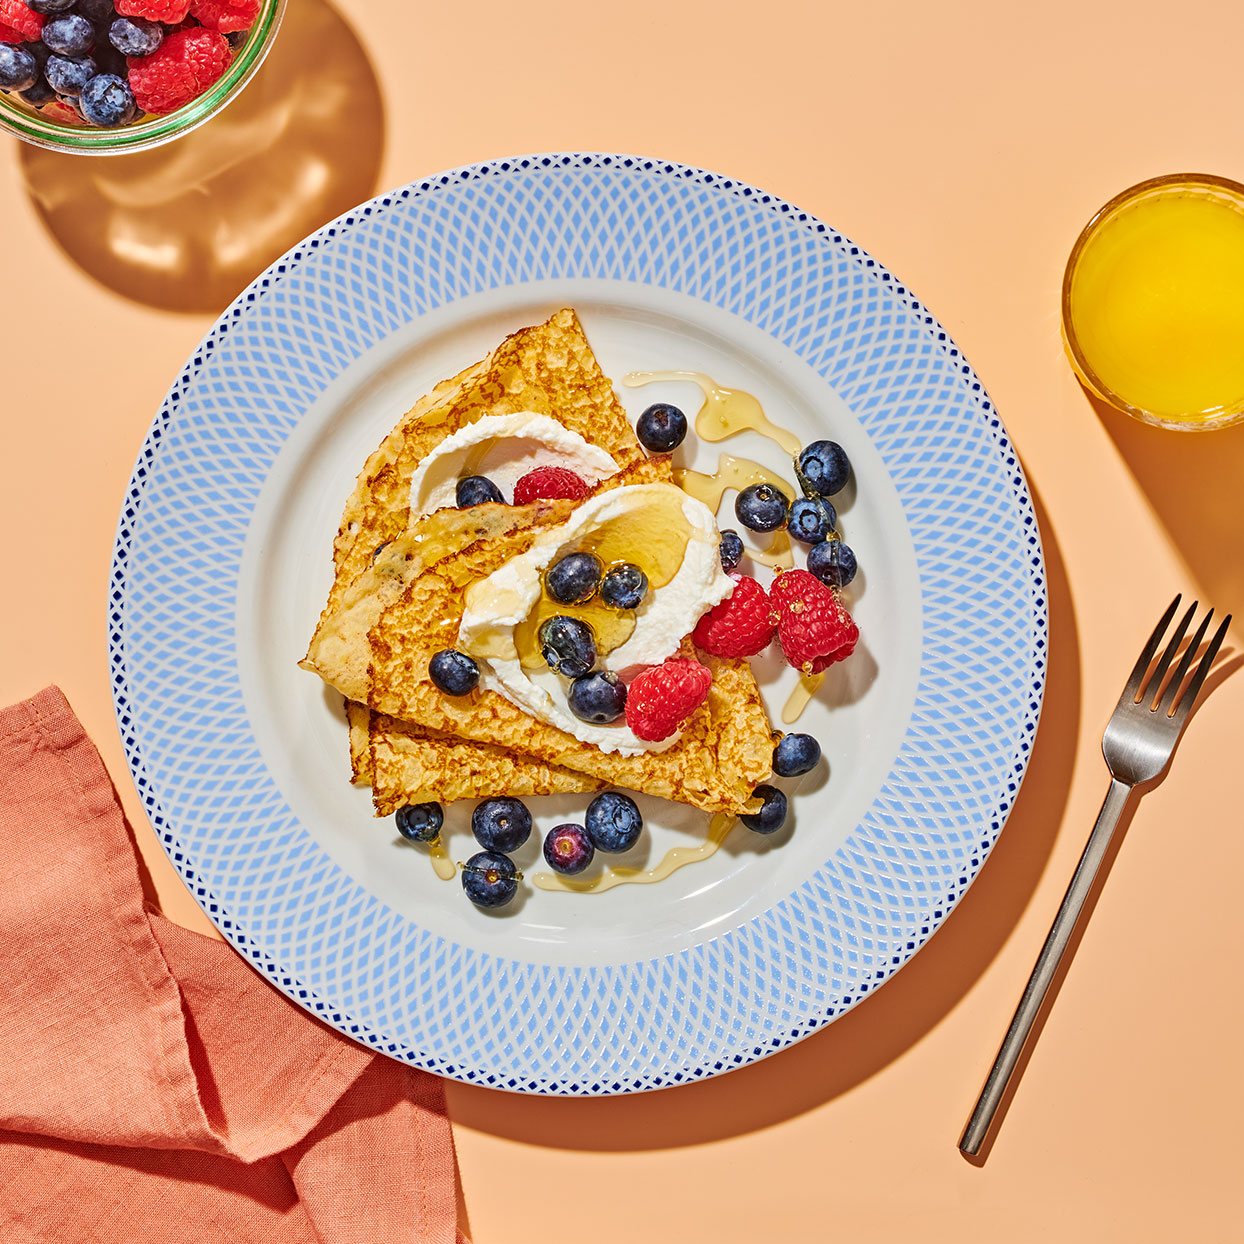 Ricotta-Berry Crepes Allrecipes Trusted Brands